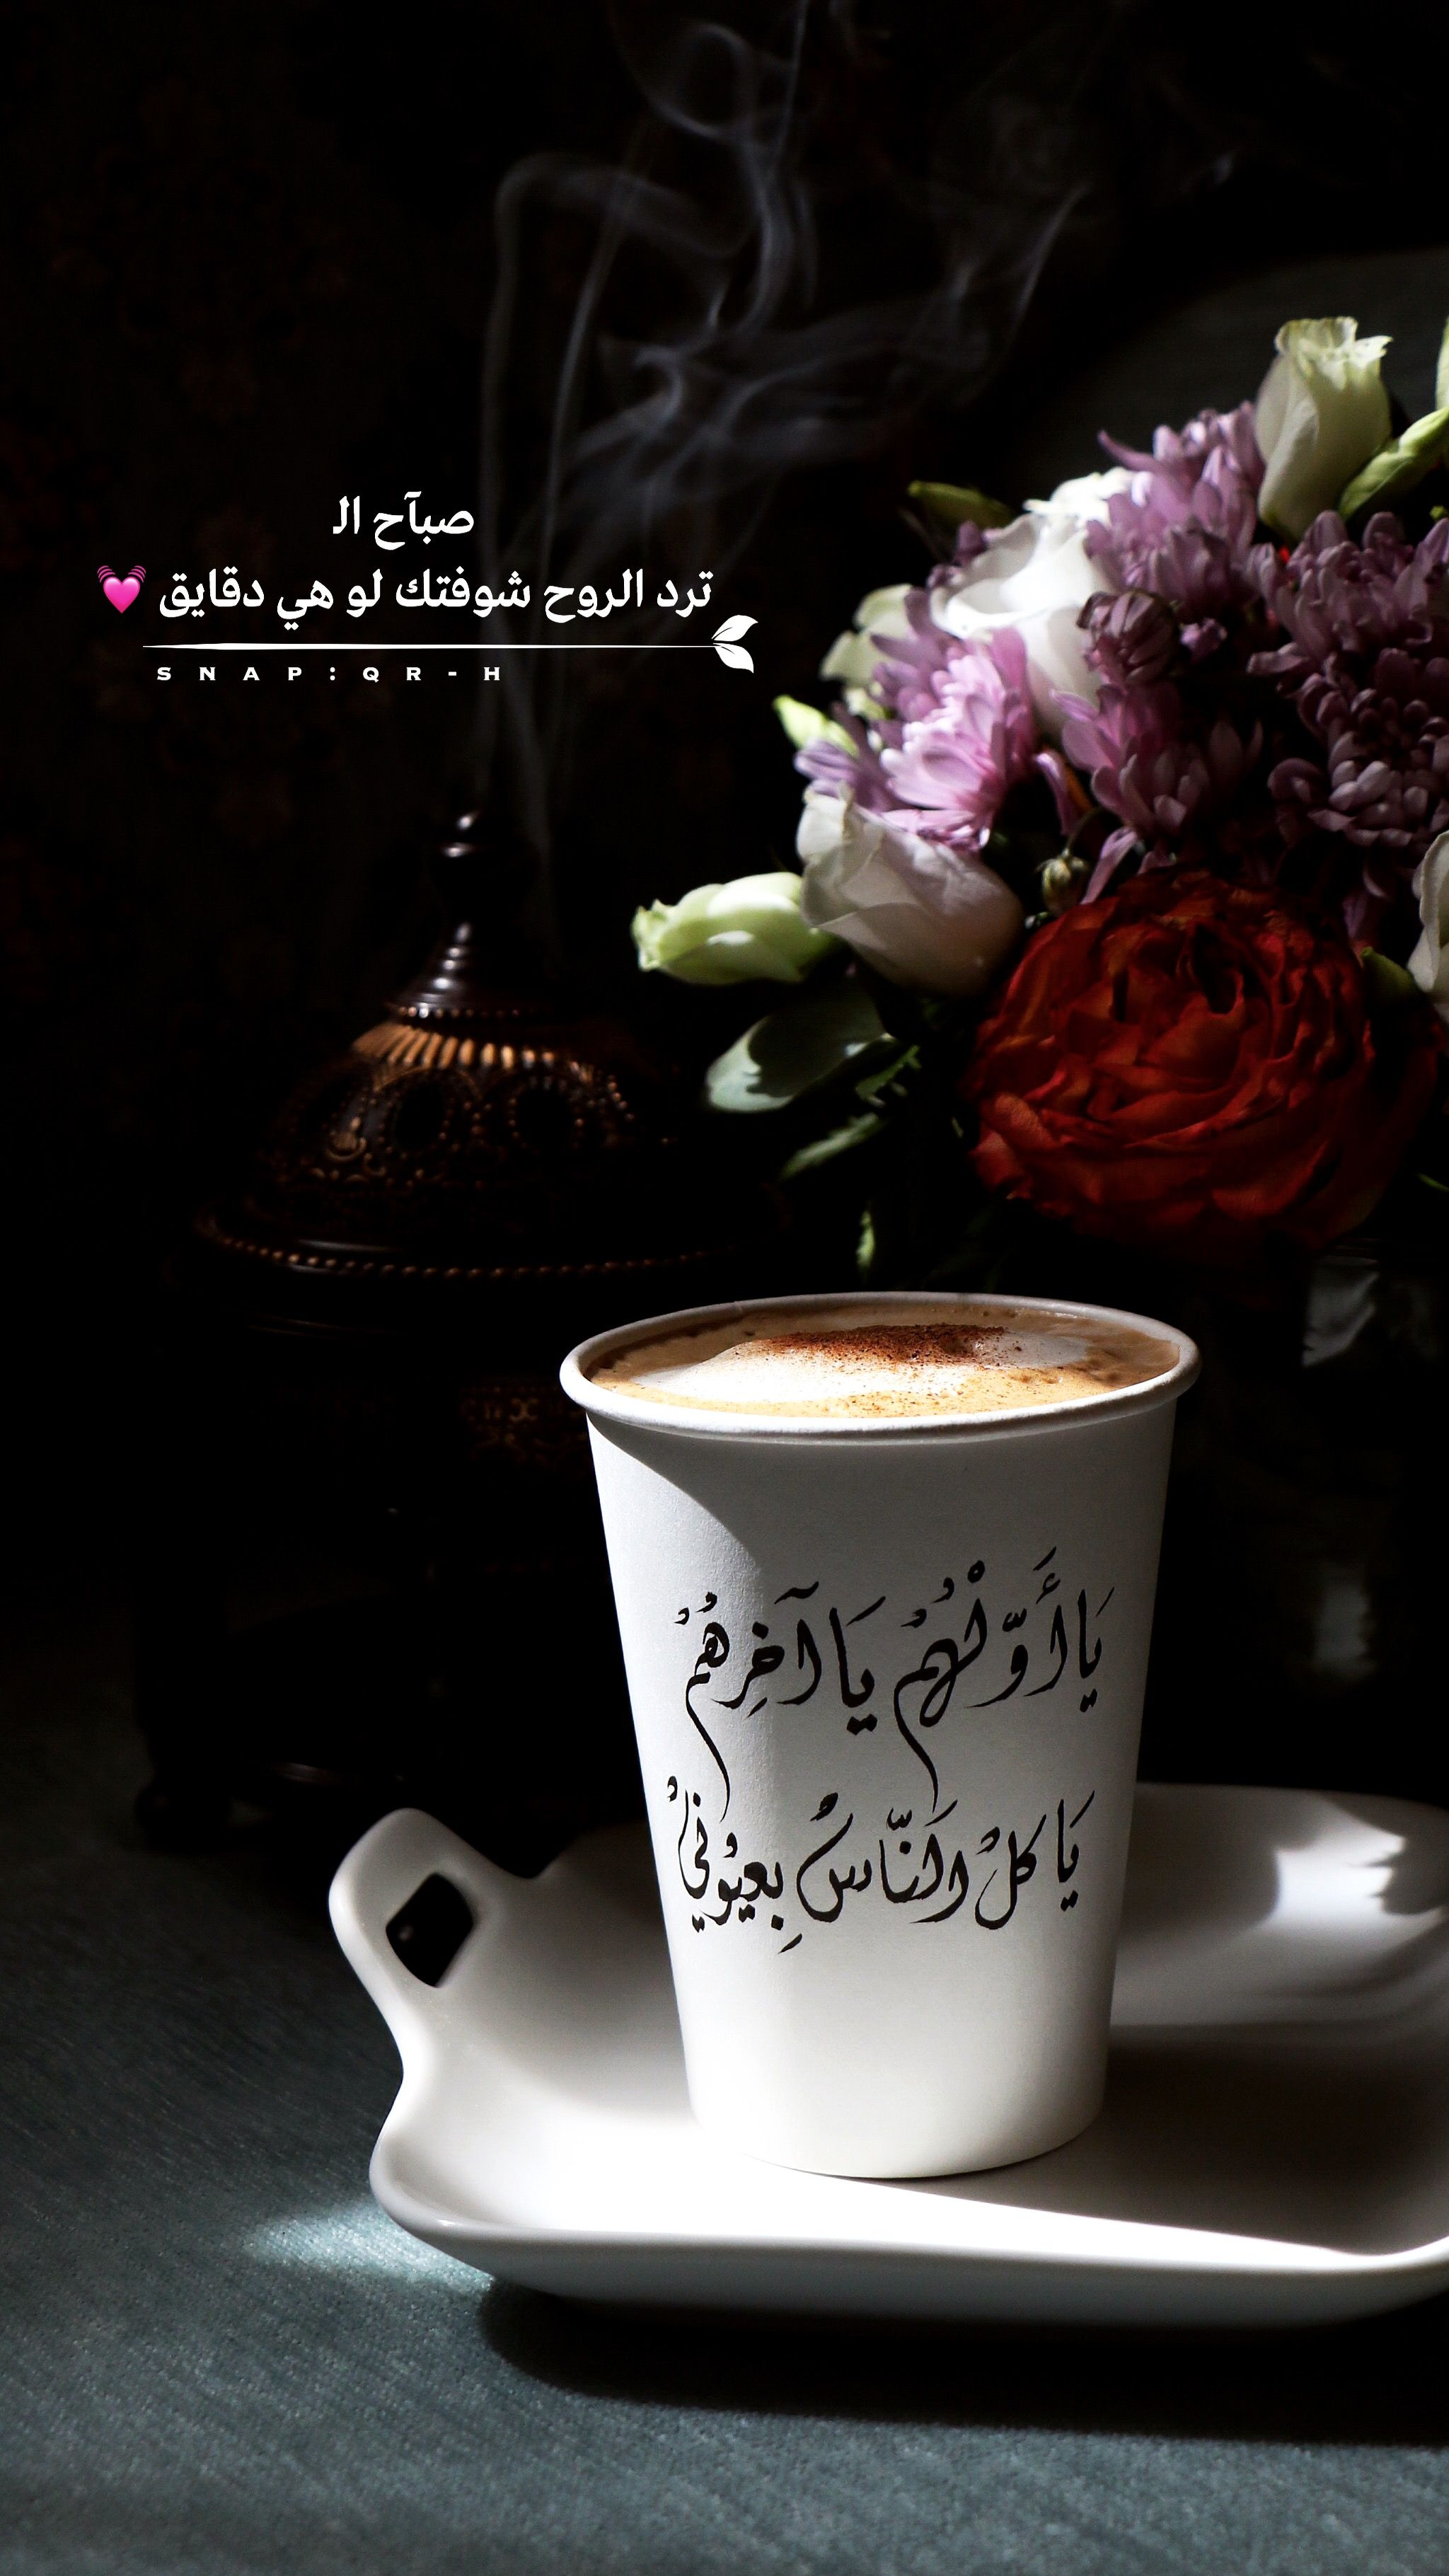 Pin By Salem Almree On صور Coffee Love Quotes Arabic Quotes Morning Love Quotes